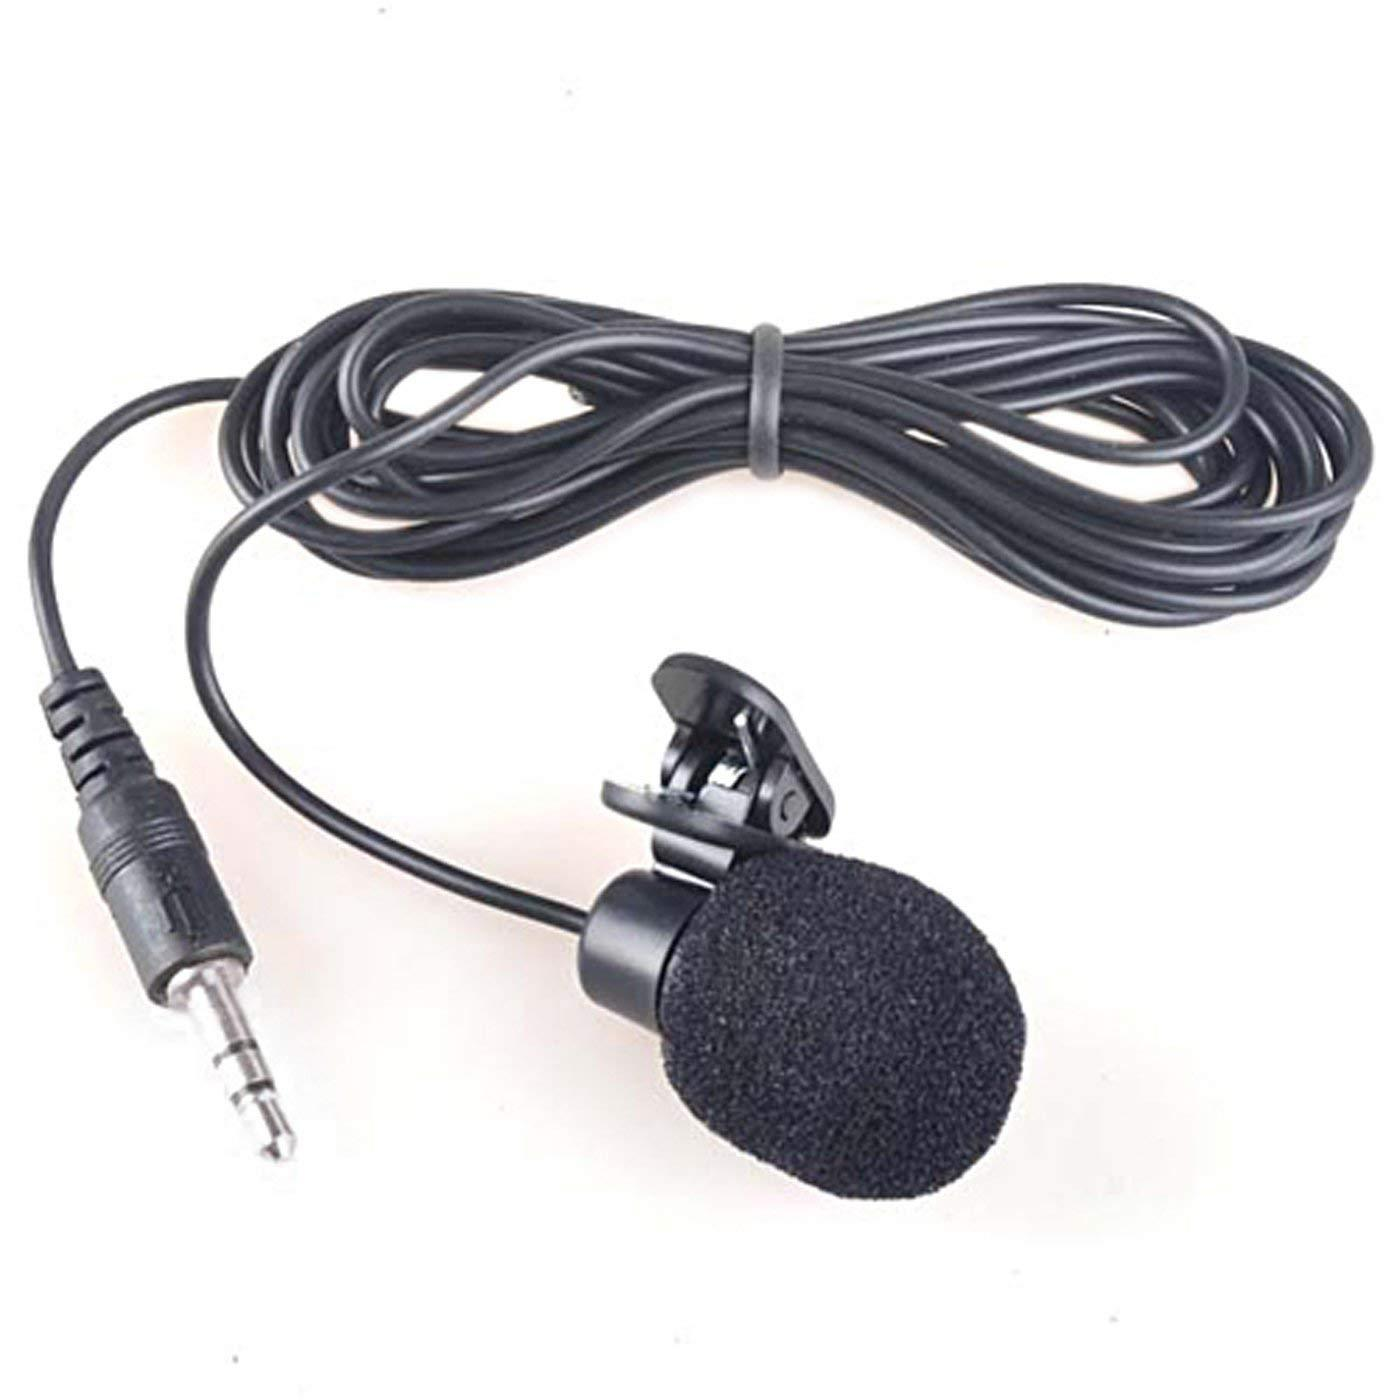 Mic microphone 3.5mm Lavalier Microphone Mini Hands Free Clip On Lapel Mic for Smartphones Cameras